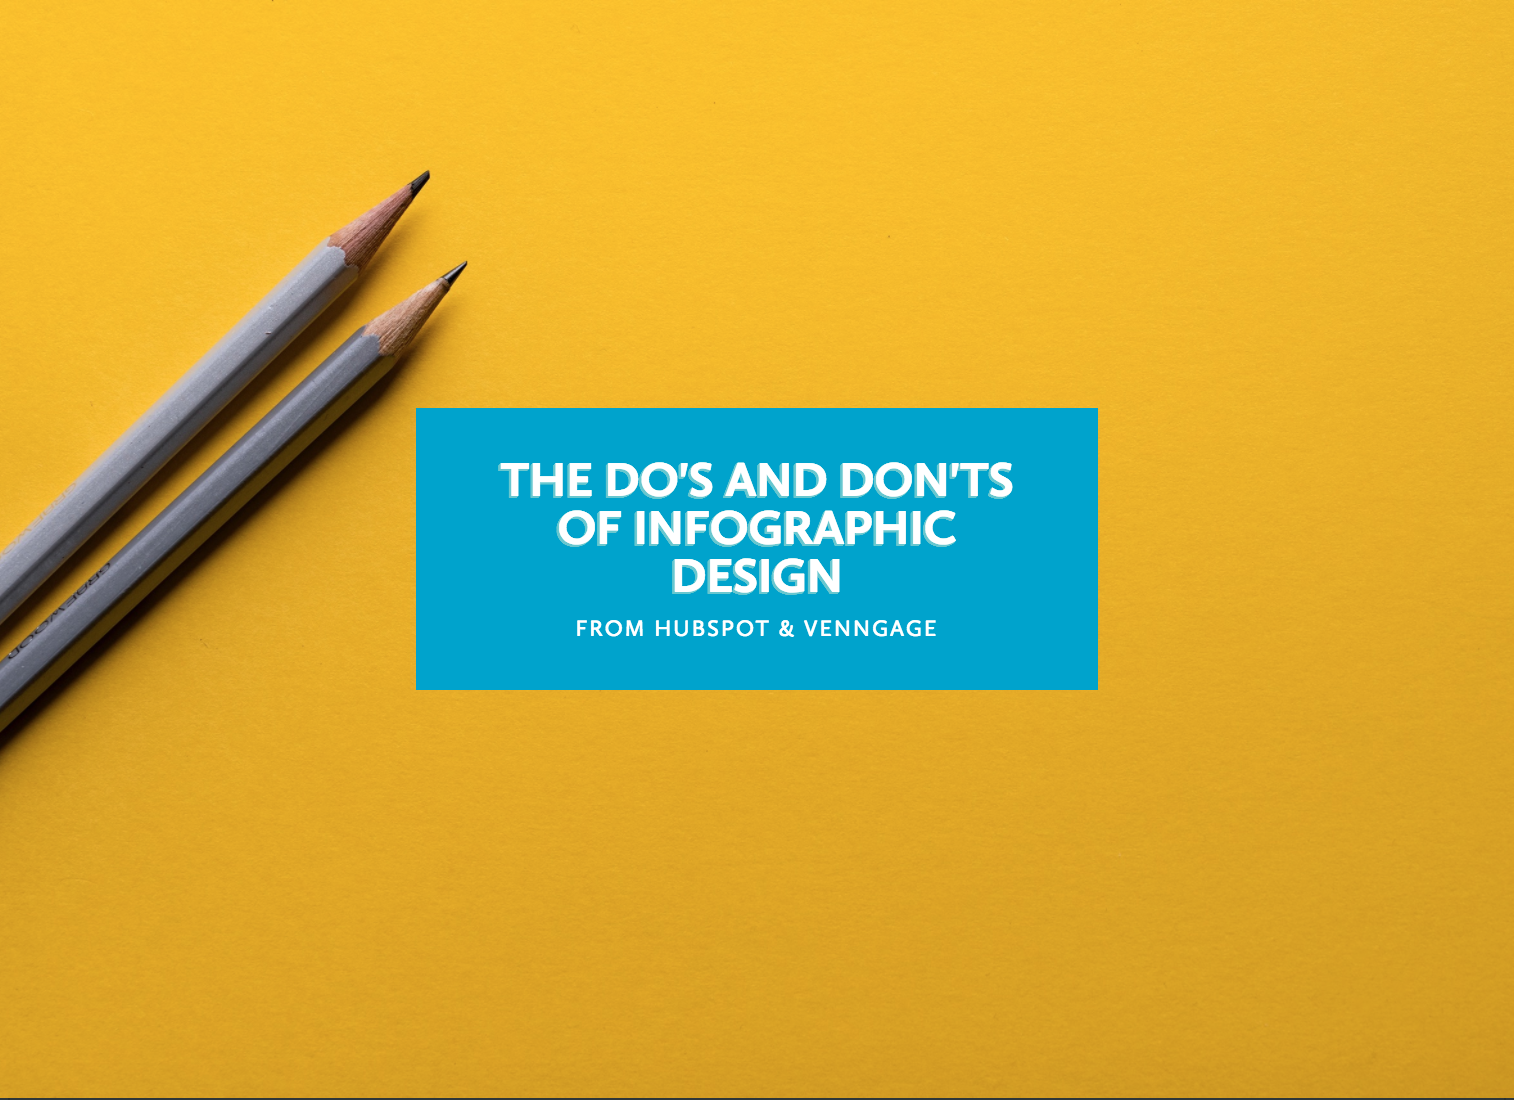 The Do's and Don'ts of Infographic Design Preview